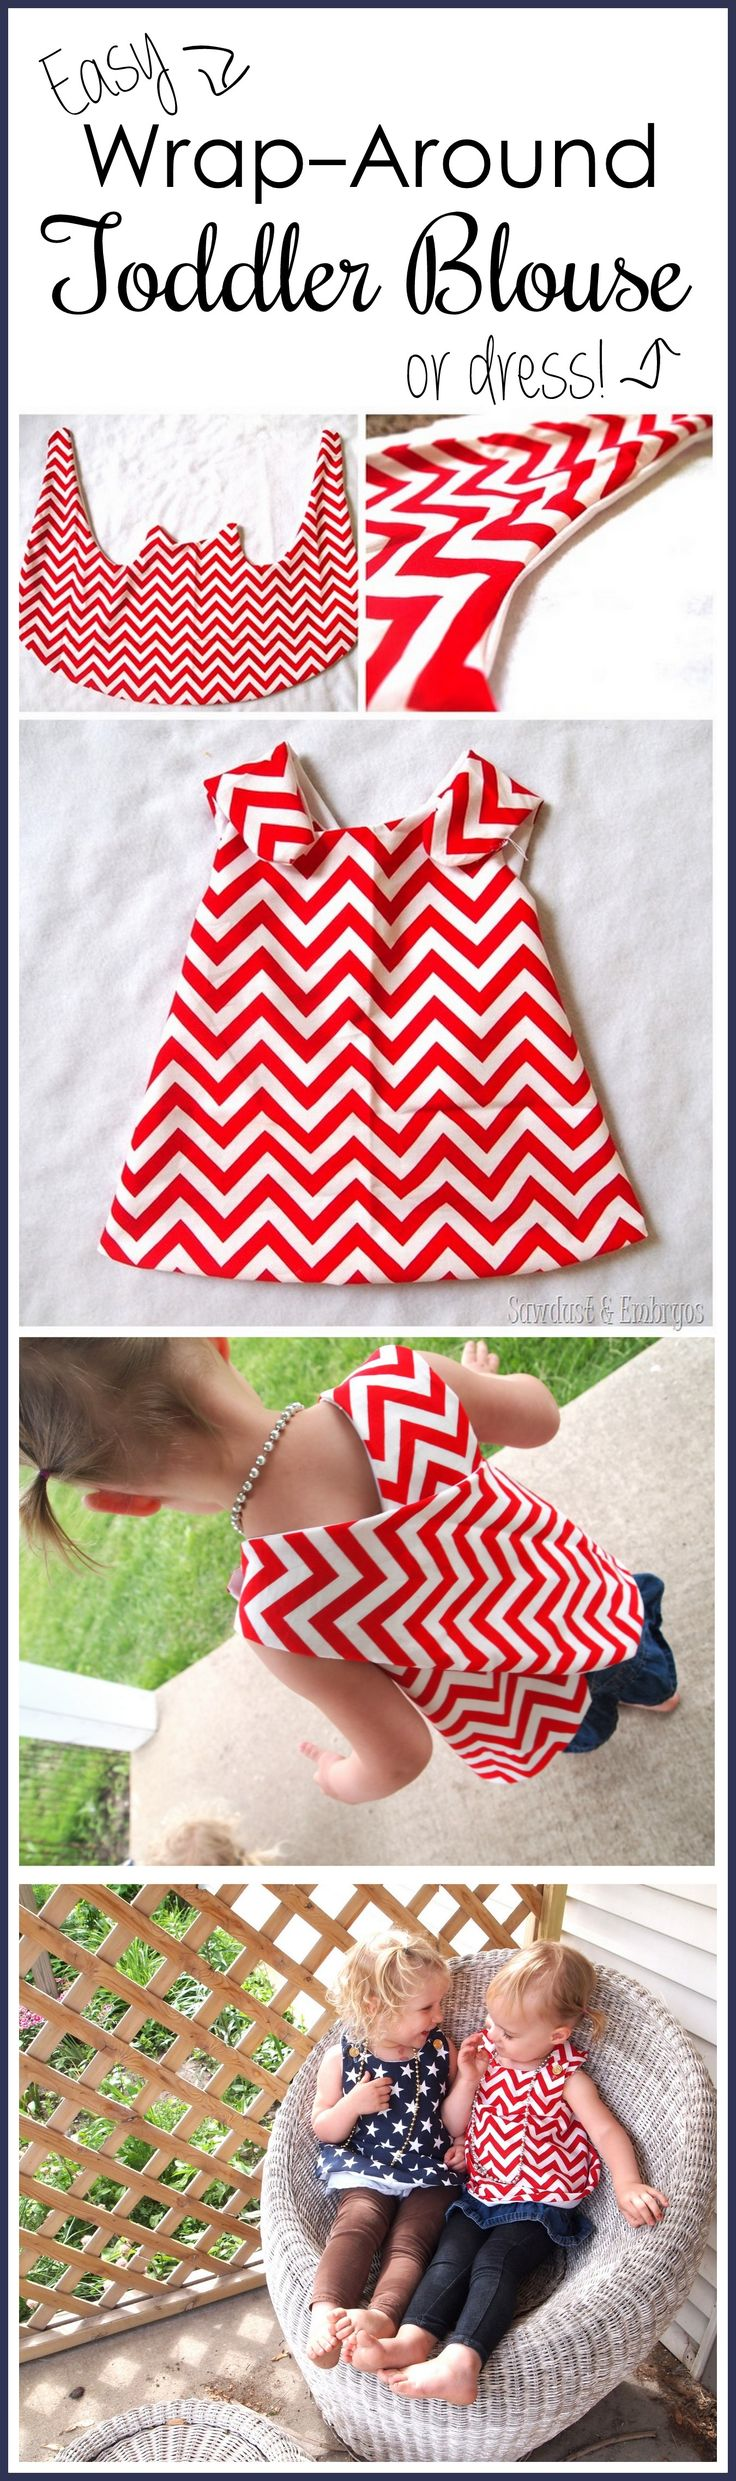 Suuuper simple wrap-around dress tutorial... so cute for toddlers! #toddler #babyoutfitsforsale #streetstyle